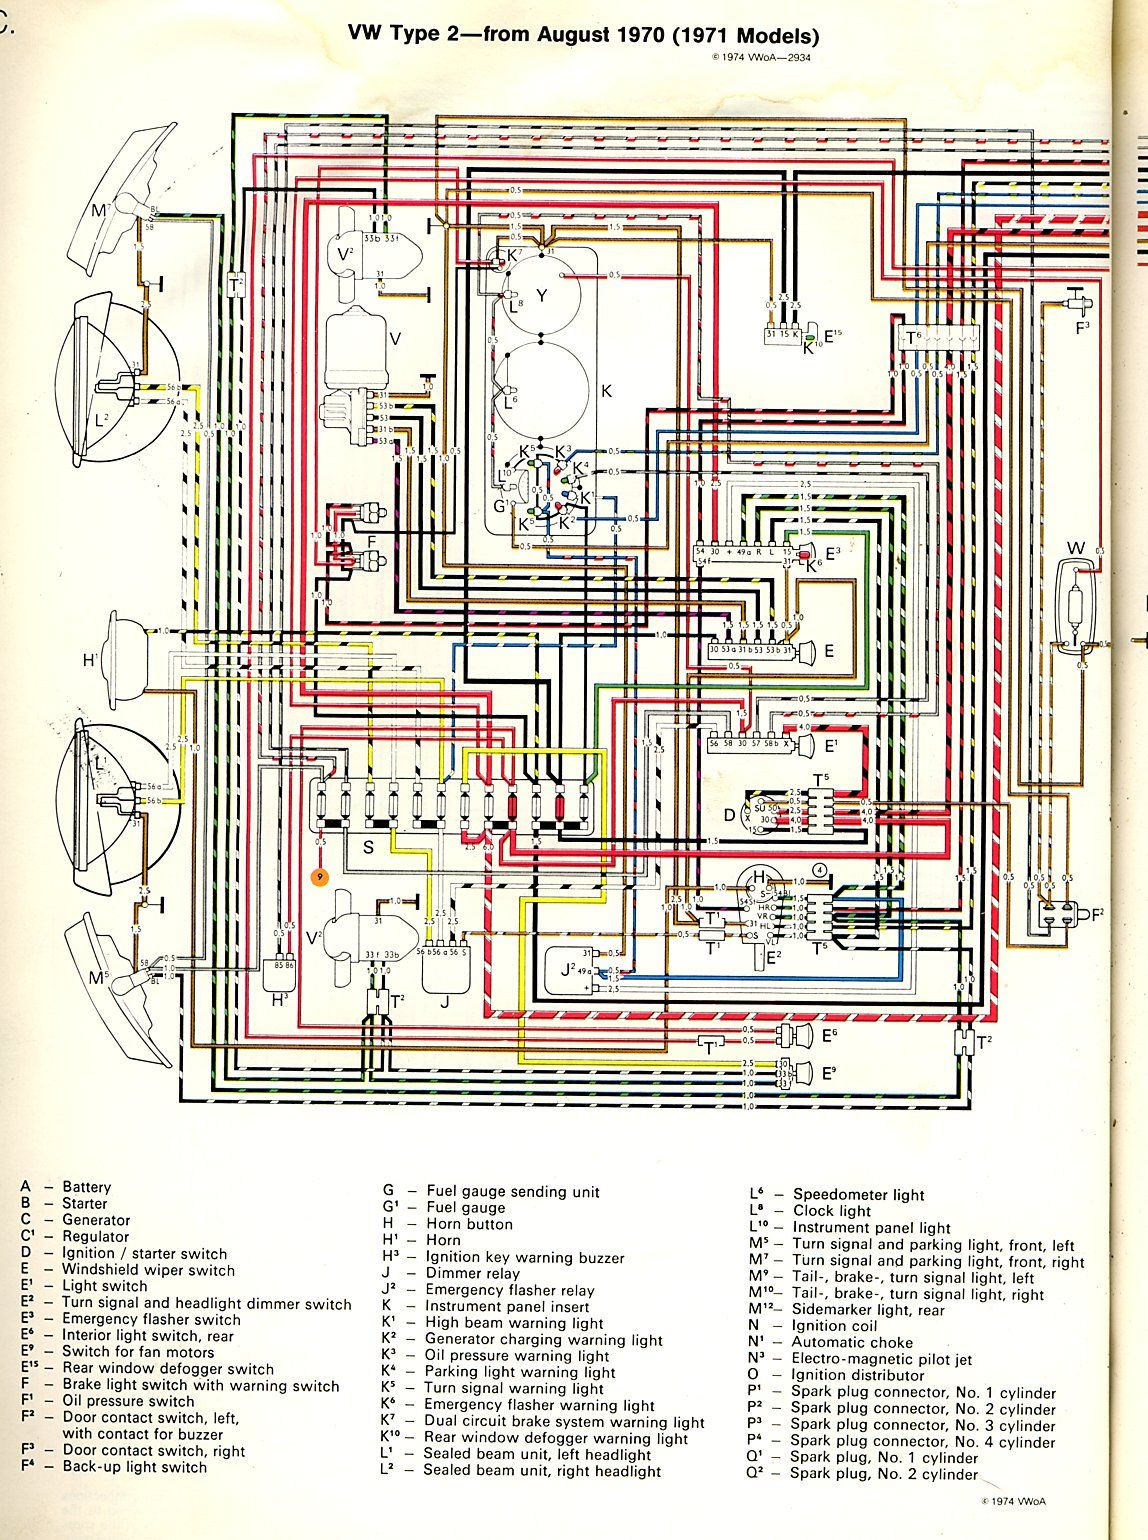 1971 bus wiring diagram thegoldenbug com stuff to try in 2018 rh pinterest com vw regulator [ 1148 x 1540 Pixel ]